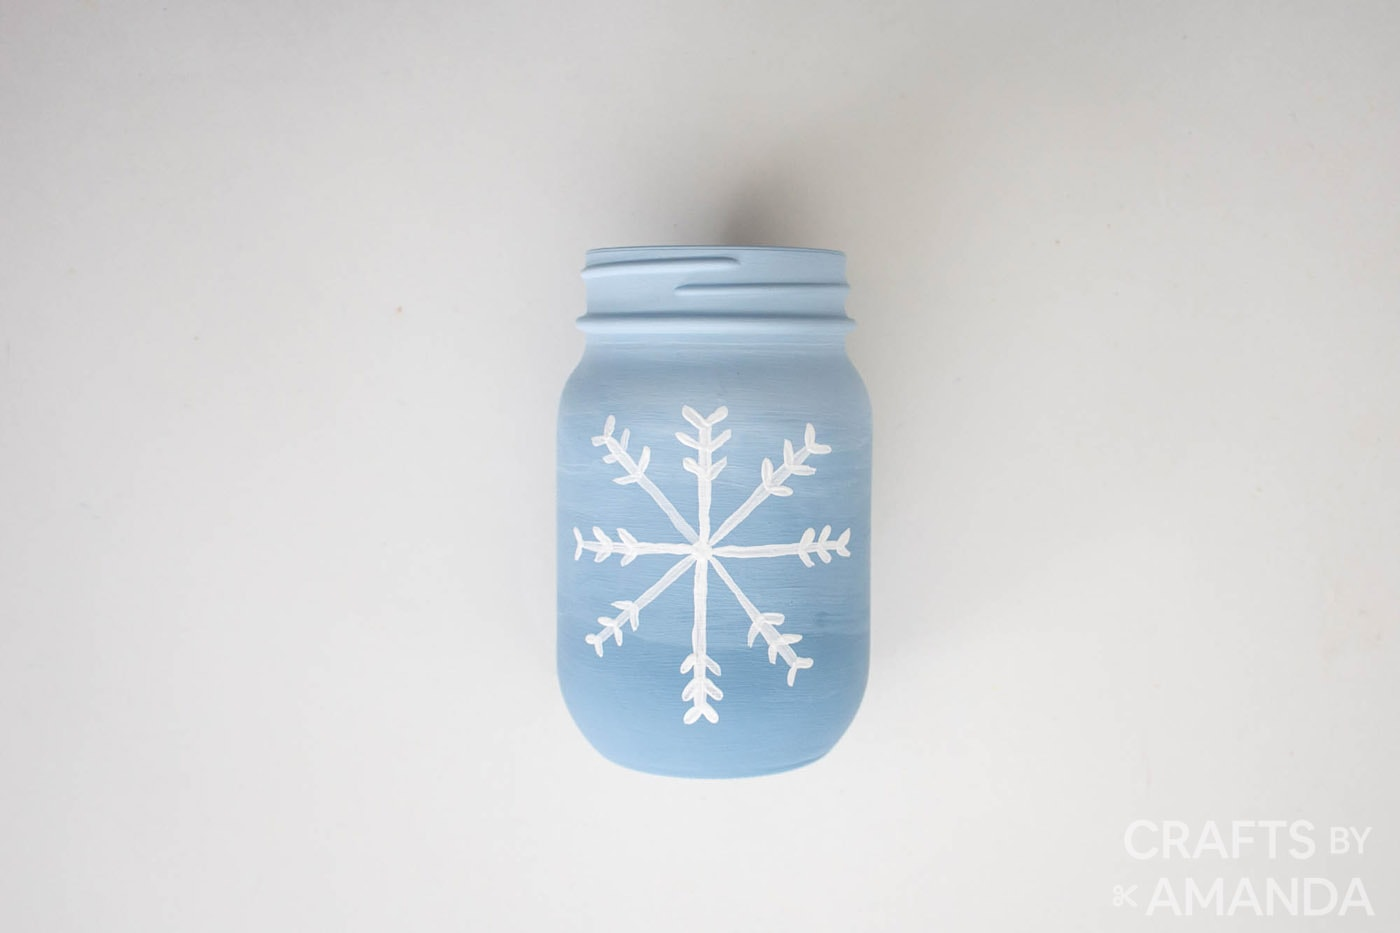 snowflake painted on jar